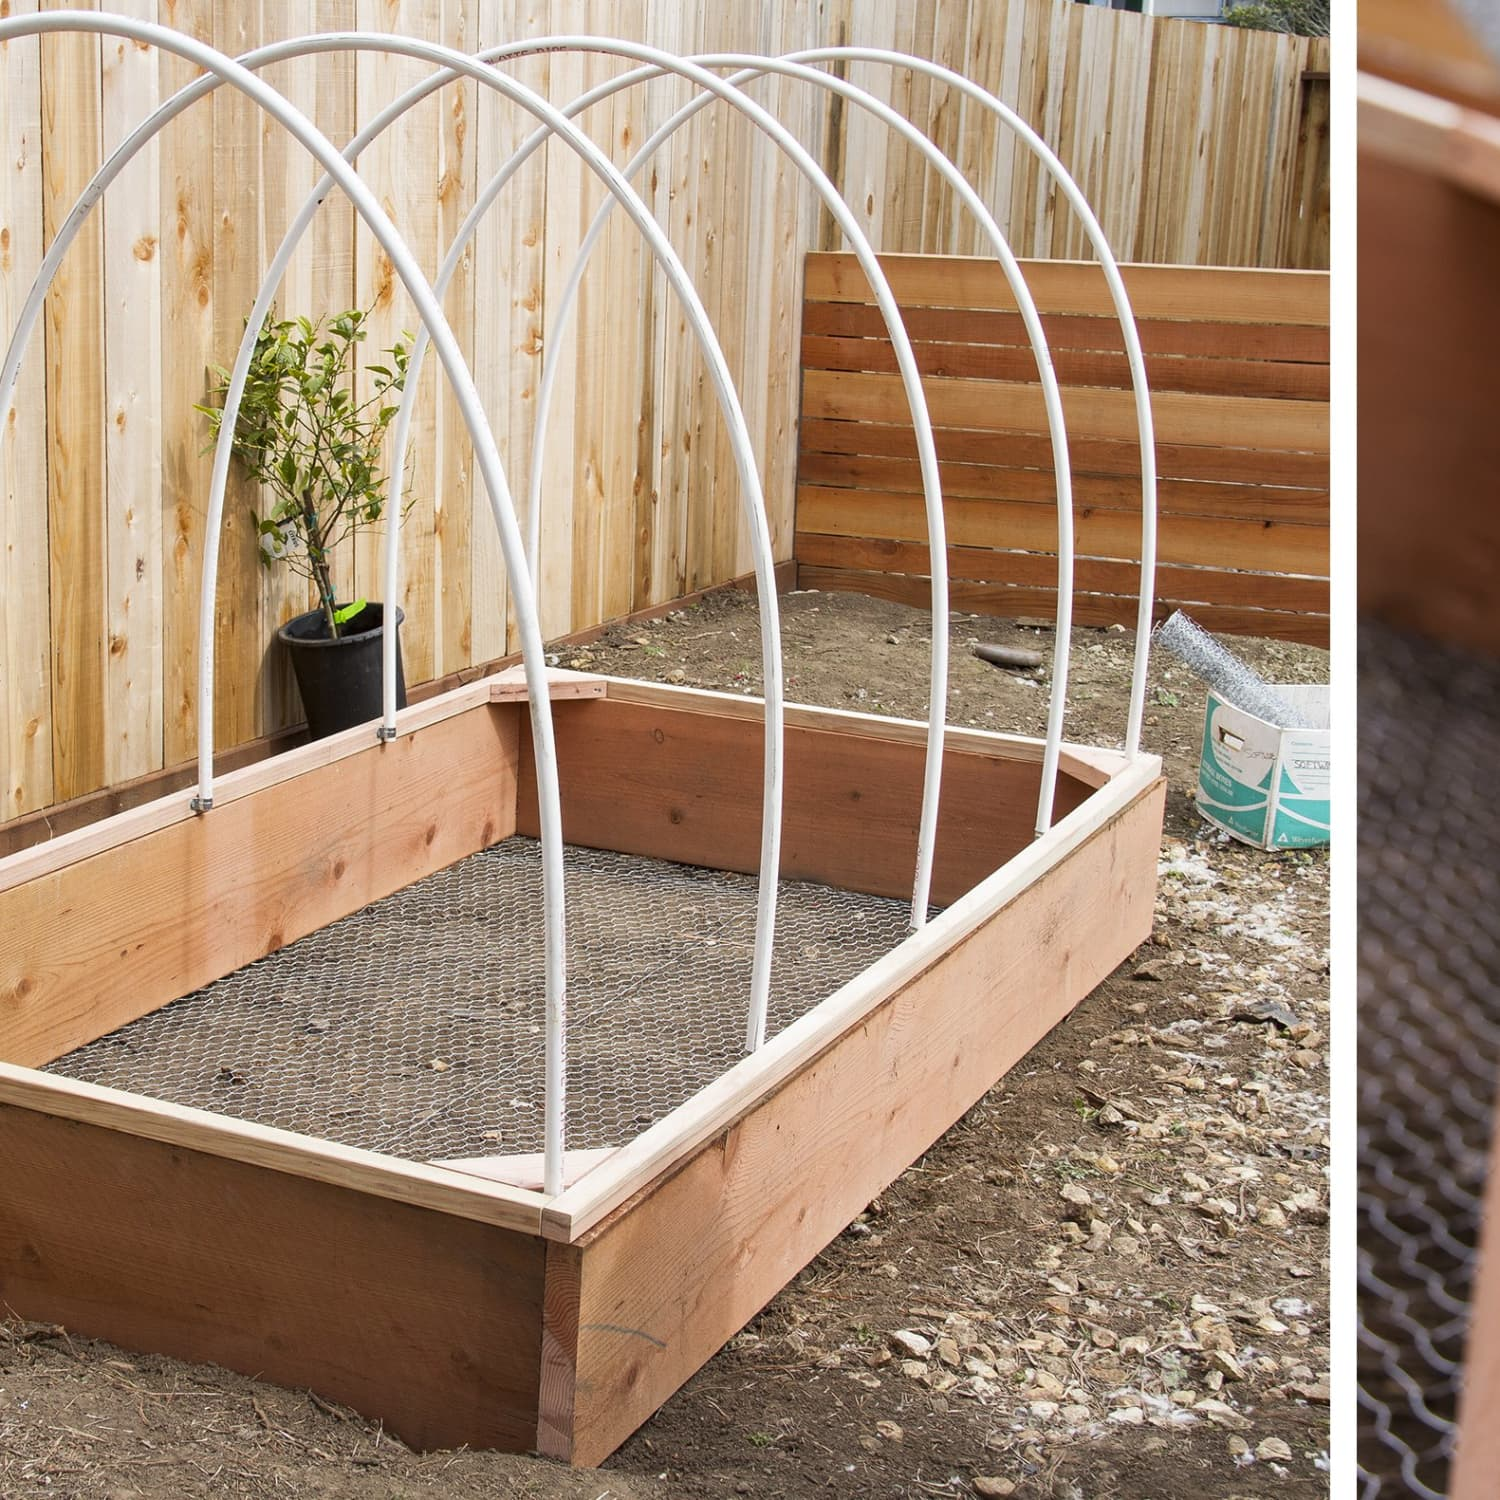 Diy Covered Greenhouse Garden A Removable Cover Solution To Protect Your Plants Apartment Therapy